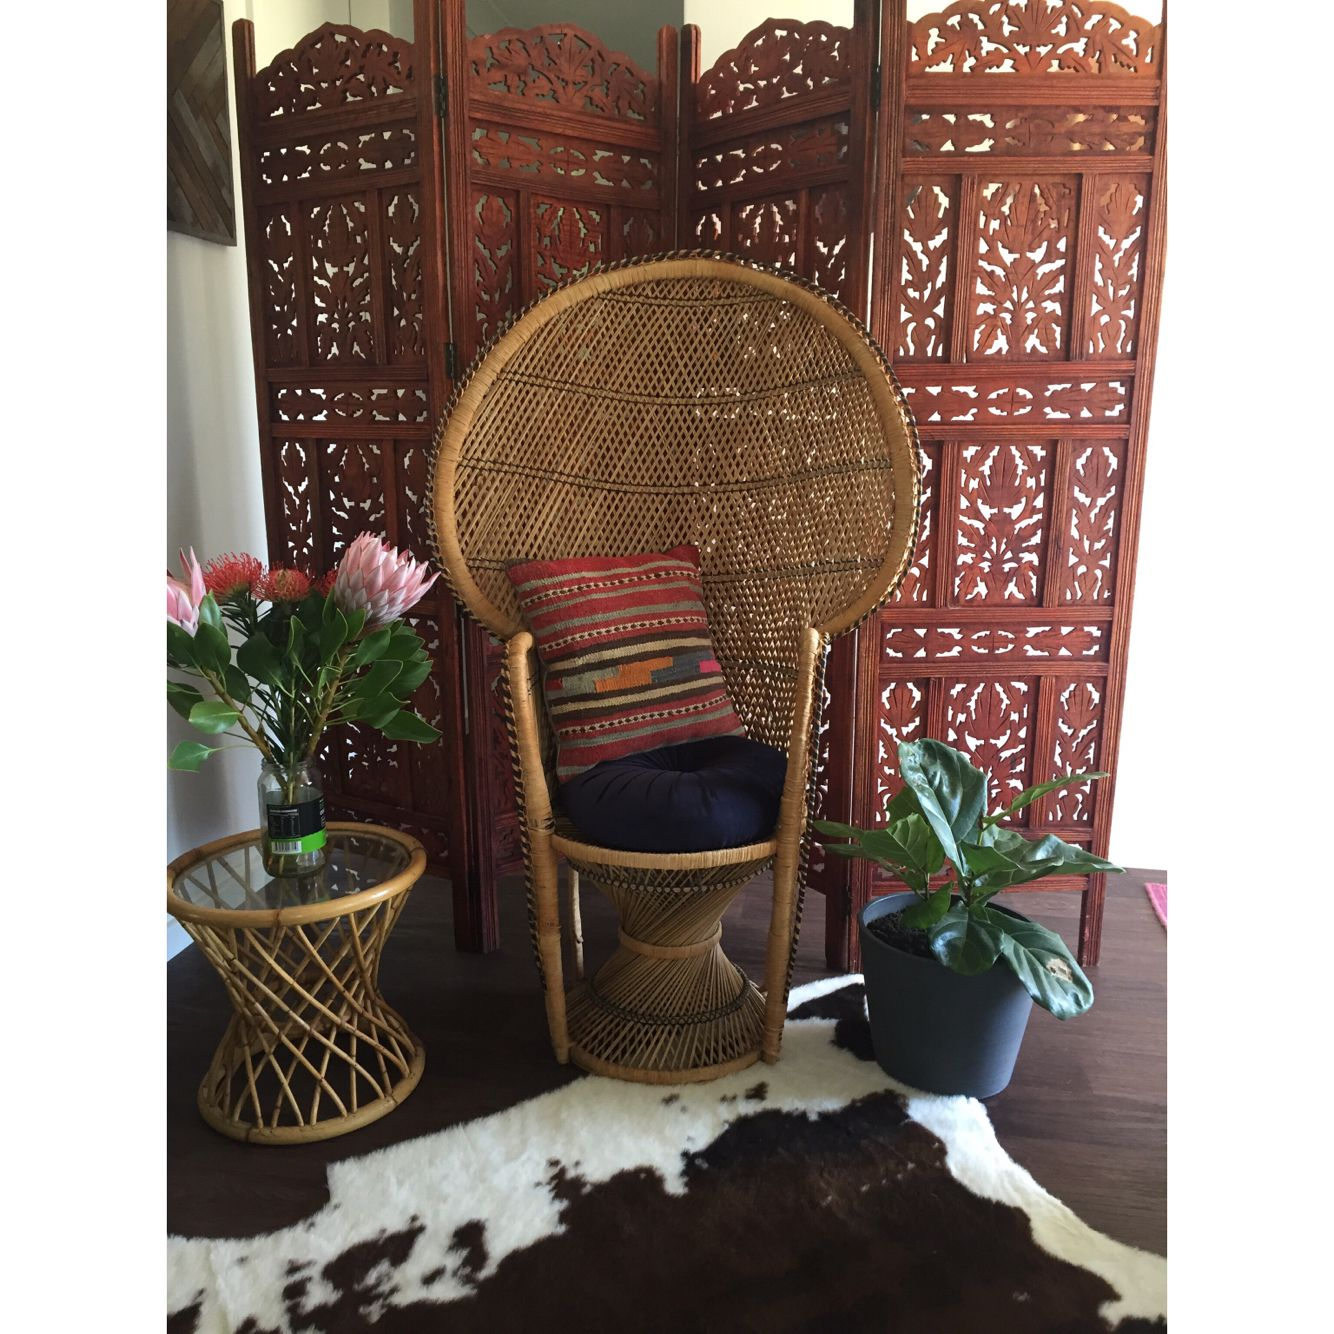 Cane Furniture Perth Bohemian Boho Peacock Chair Balinese Screen Baby Shower Picnic